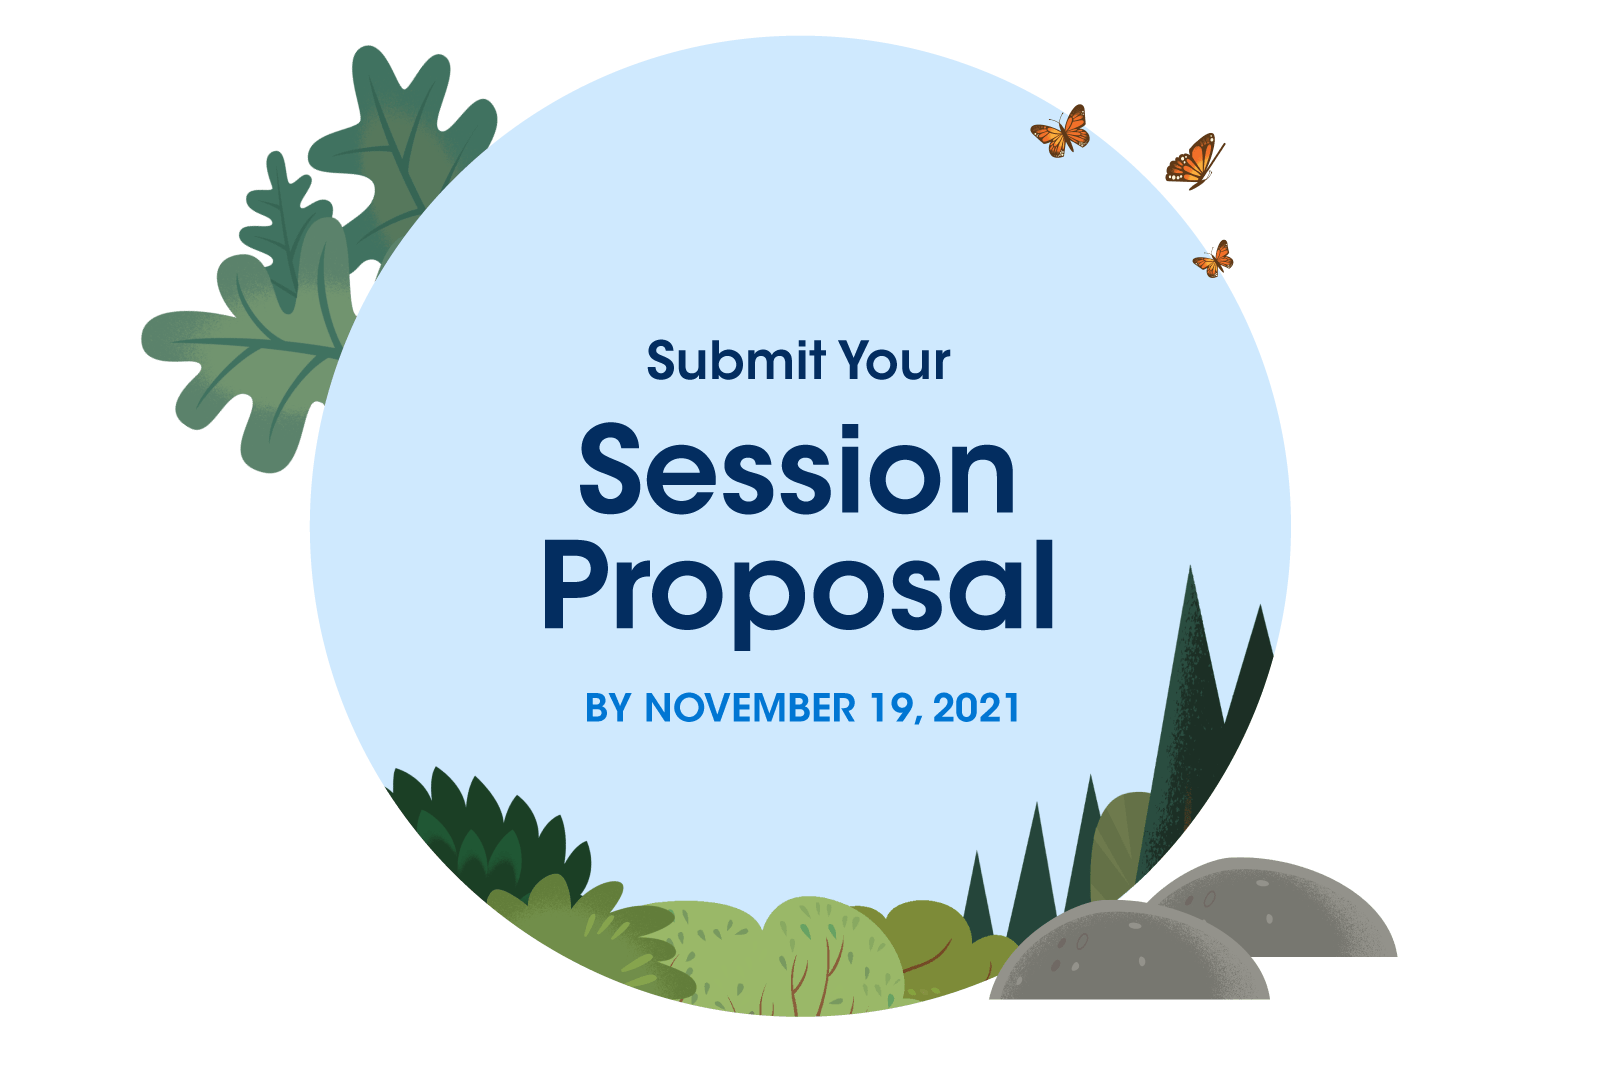 Education Summit 2022 - Session Proposals due by Nov 19, 2021